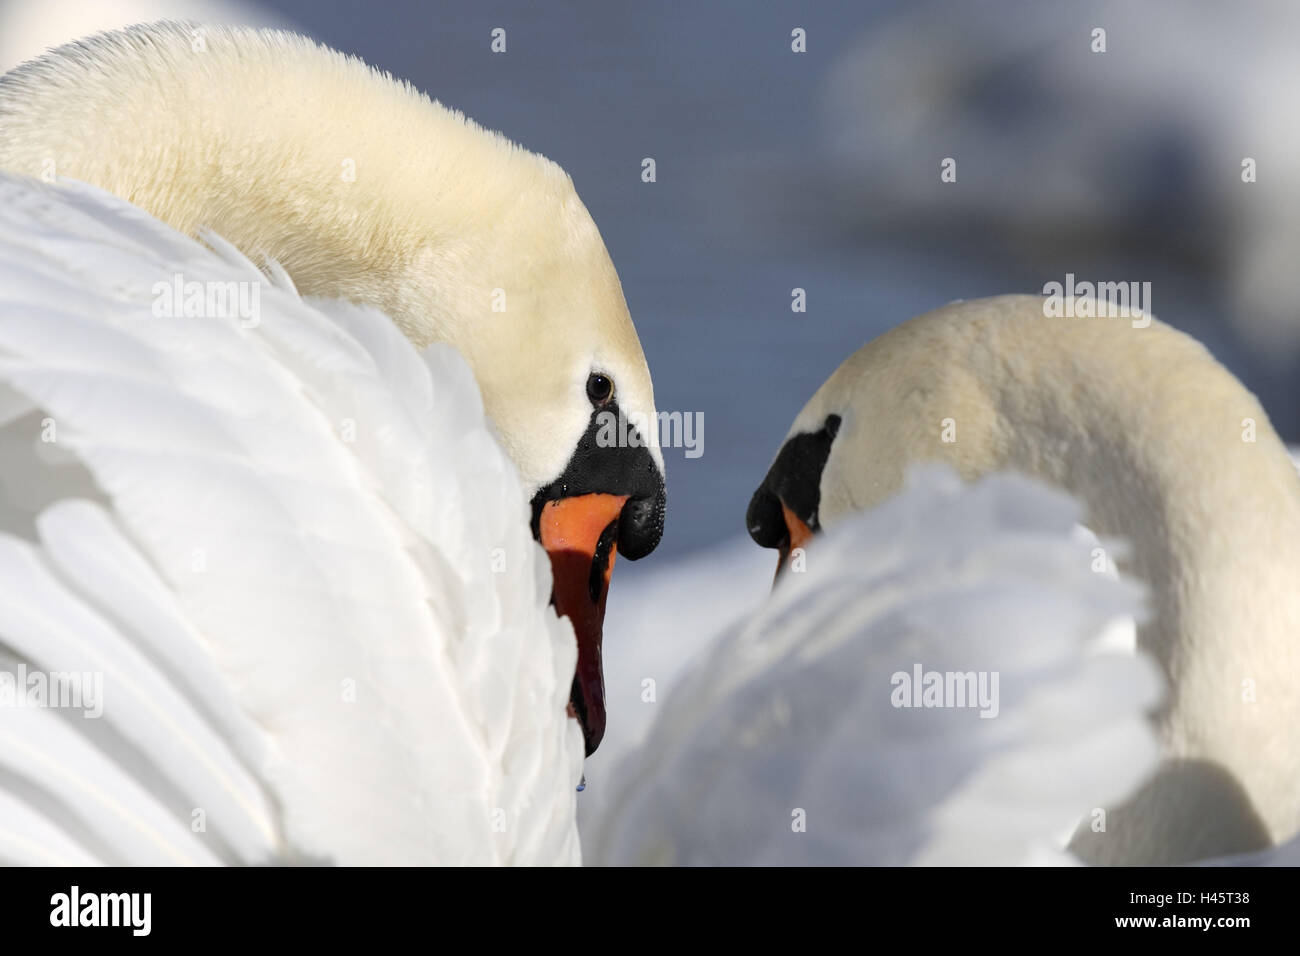 Hump-swans, Cygnus olor, advertise, performs courtship display, - Stock Image